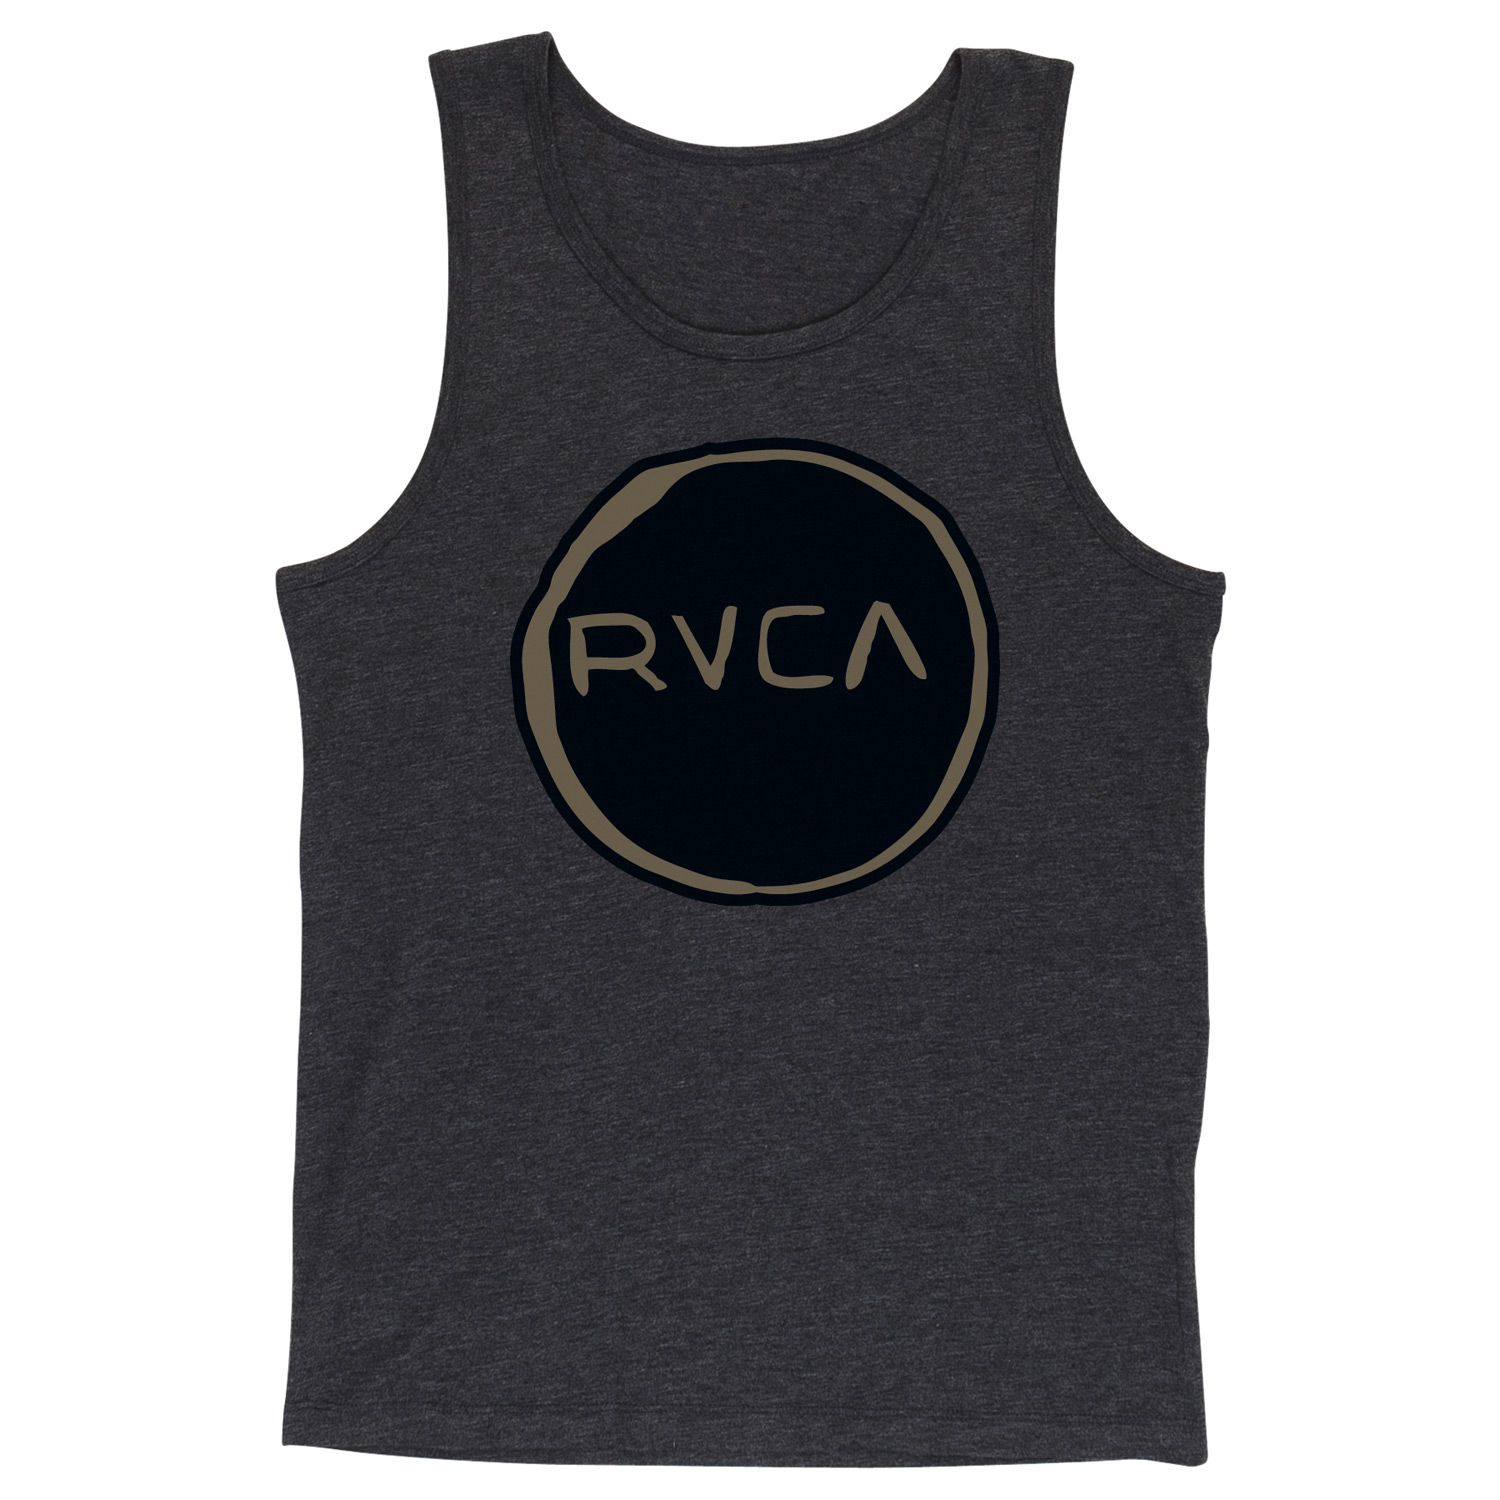 Surf Key Features of the RVCA Melt Circle Tank: 55% Polyester/45% Cotton Vintage Dye Slim Fit tank with front print and screened inside neck - $26.00